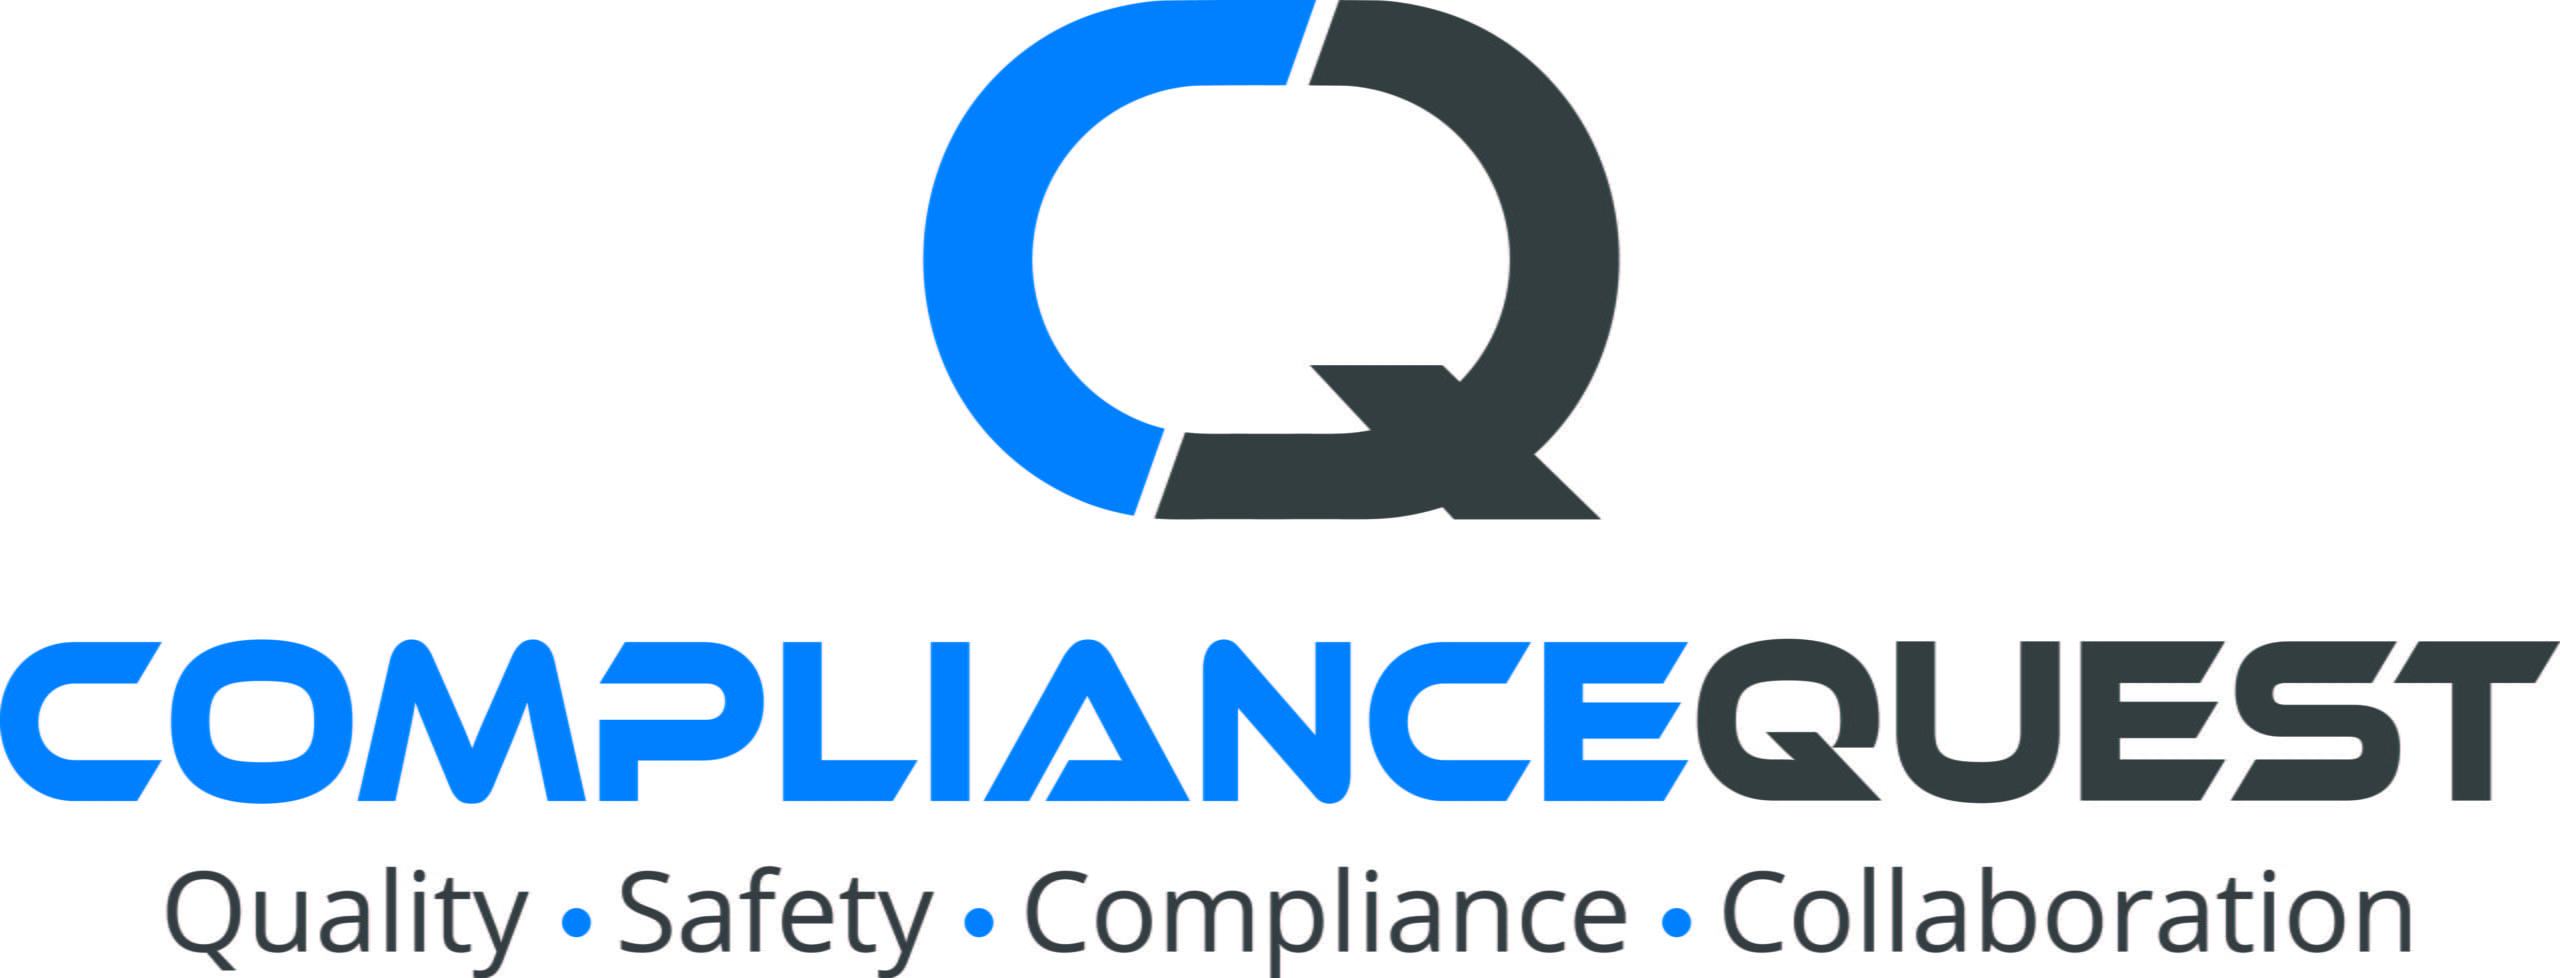 ComplianceQuest Features Again in Inc.5000's List of 'Greatest Entrepreneurs and Fastest-Growing Private Companies in America'